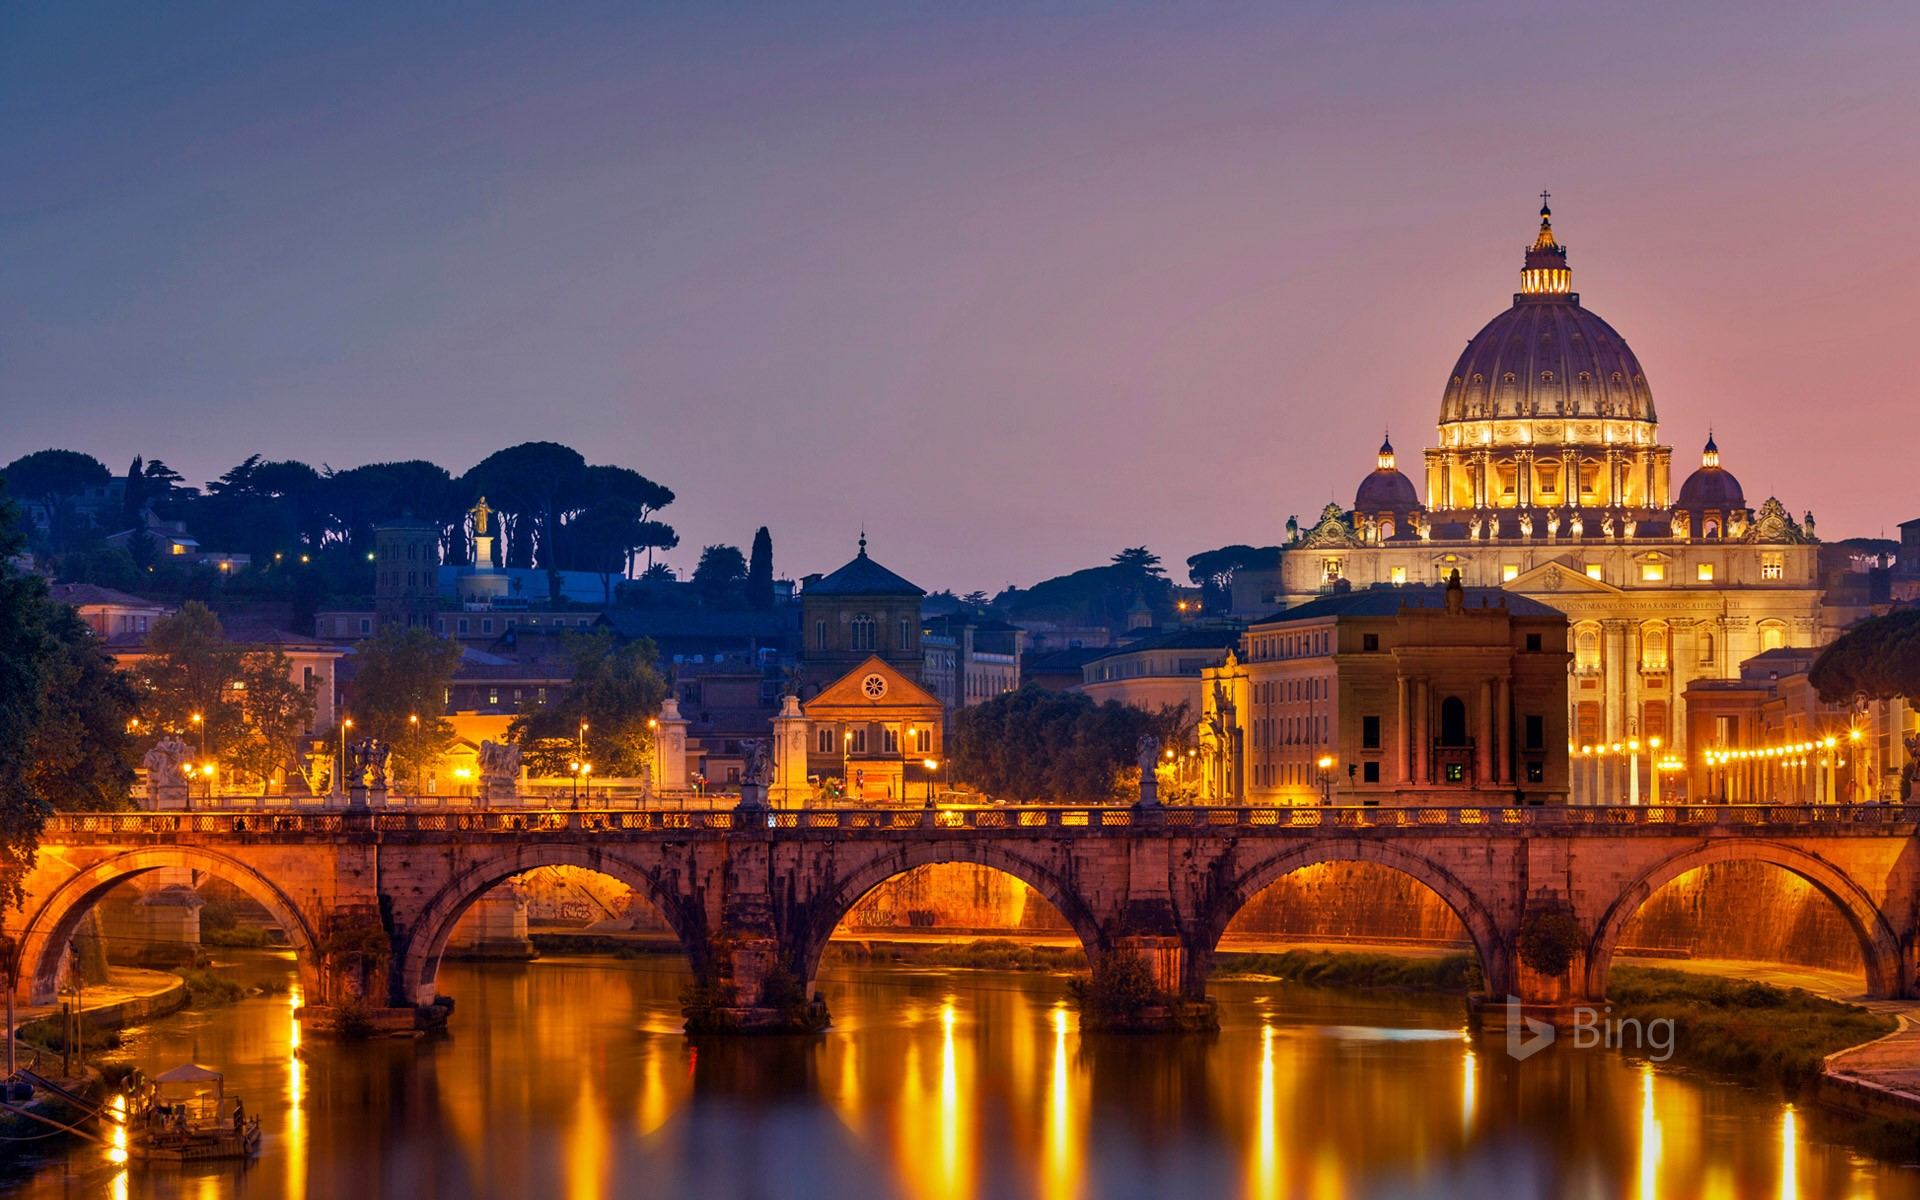 Ponte Sant'Angelo and St. Peter's Basilica in Rome, Italy